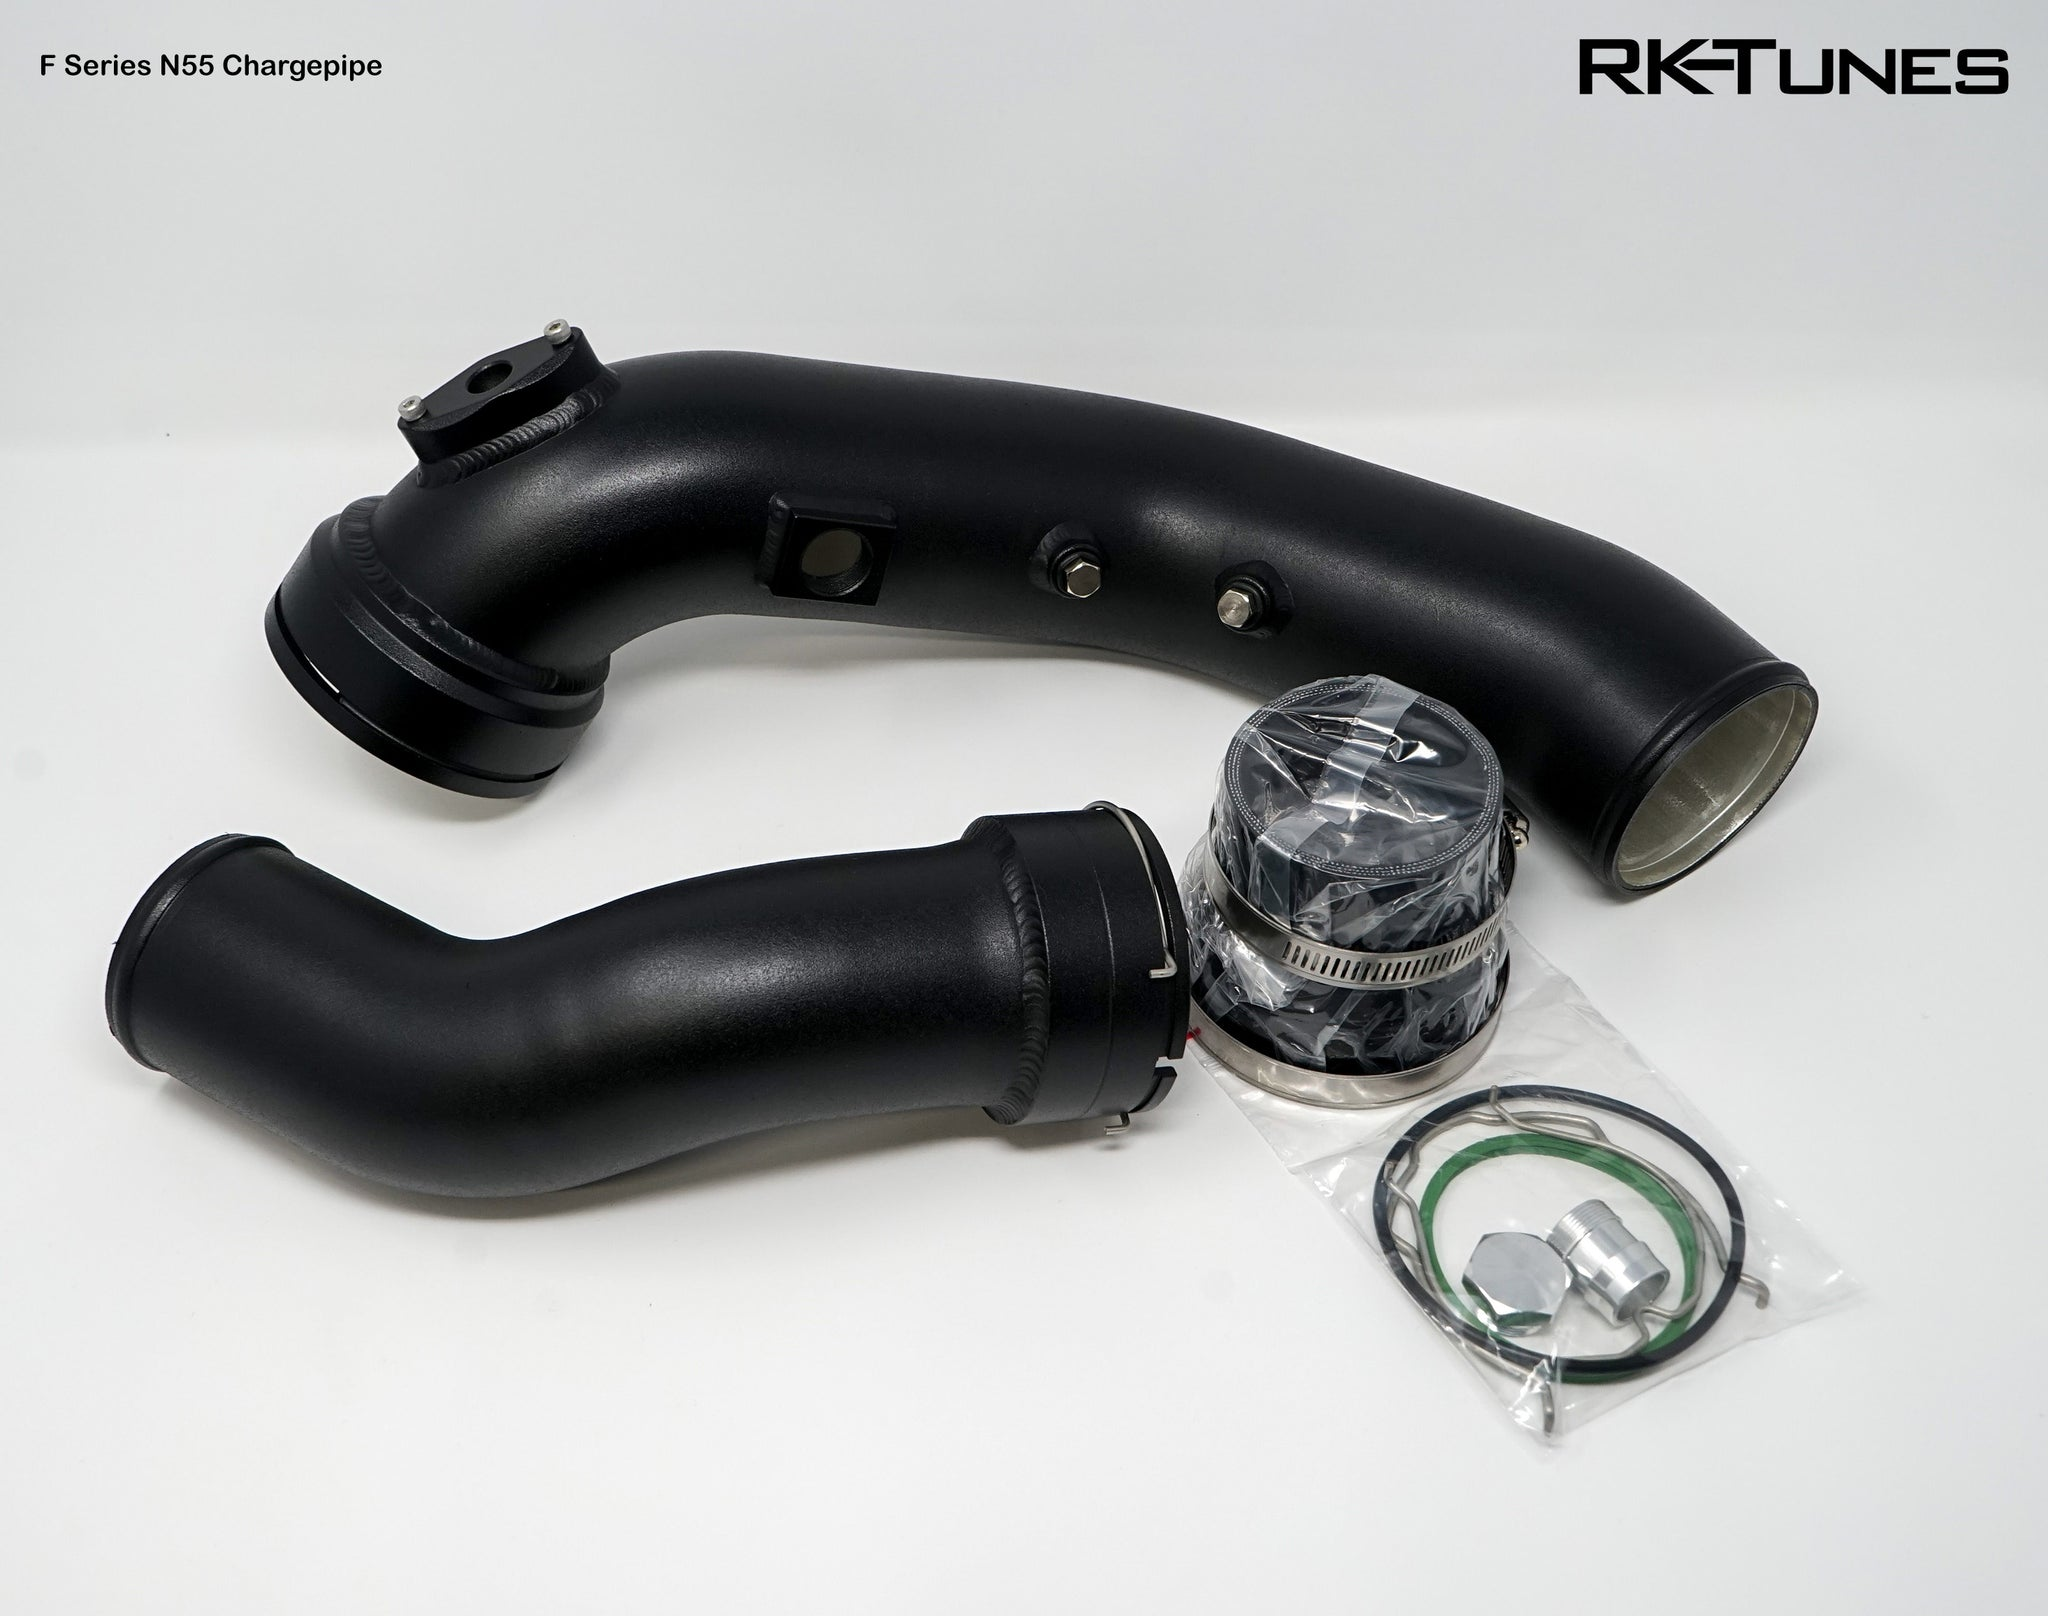 F Series N55 Chargepipe and Turbo Outlet Chargepipe